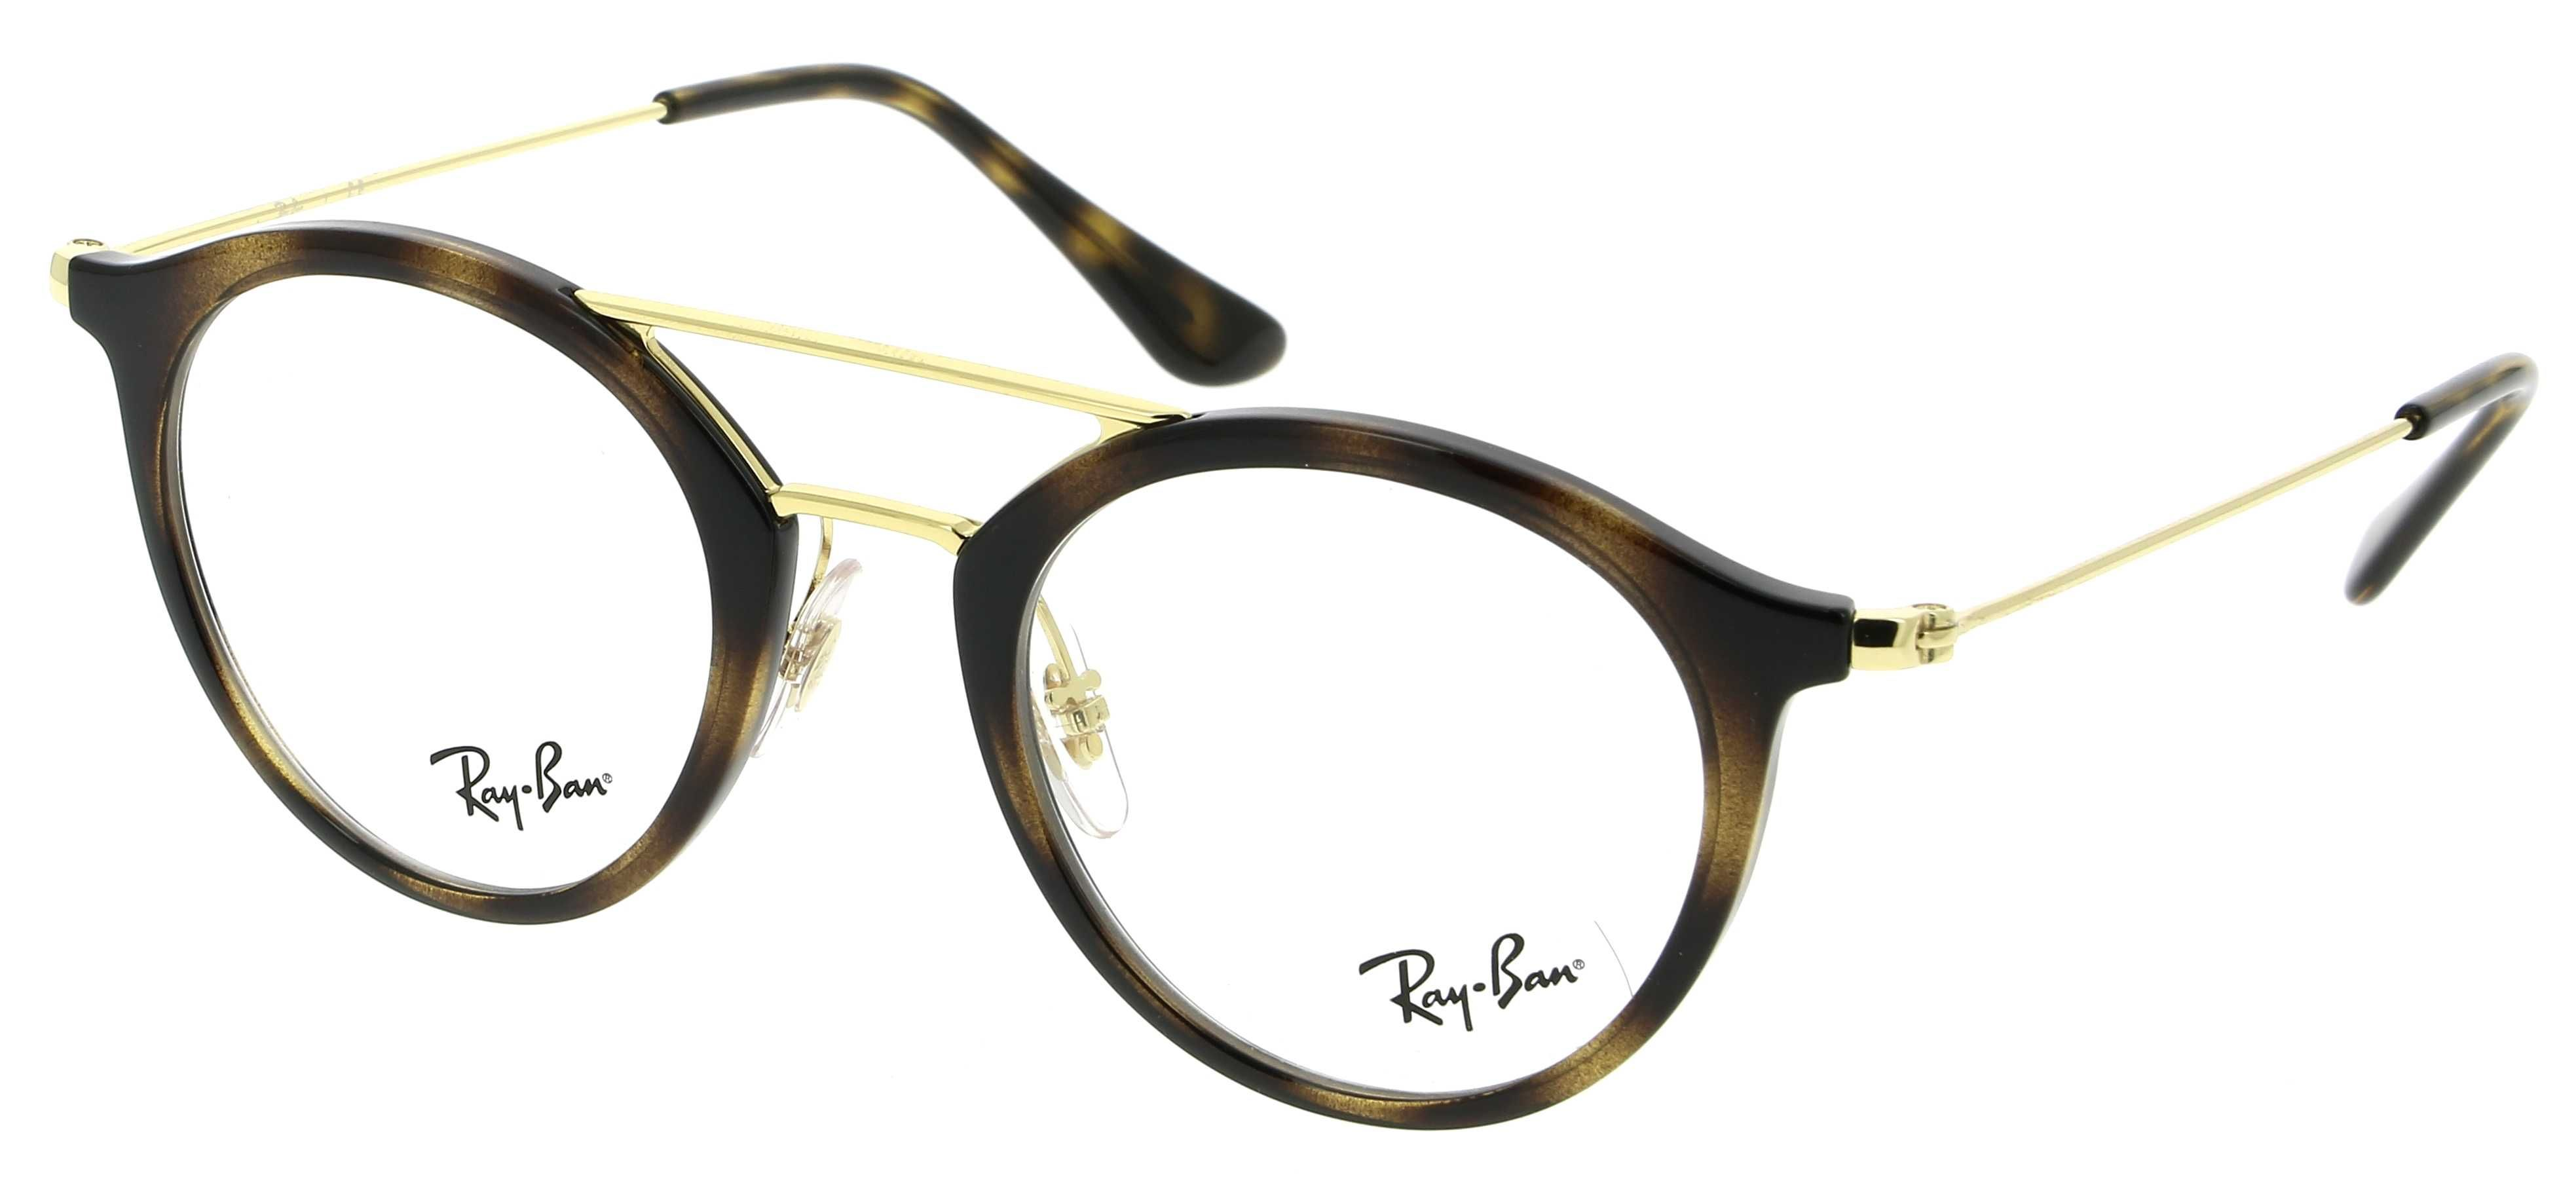 Ray-ban rx 2447v 5494 47 21   accessories   Pinterest   Glasses, Eyeglasses  and Eye Glasses dfbd763b982d